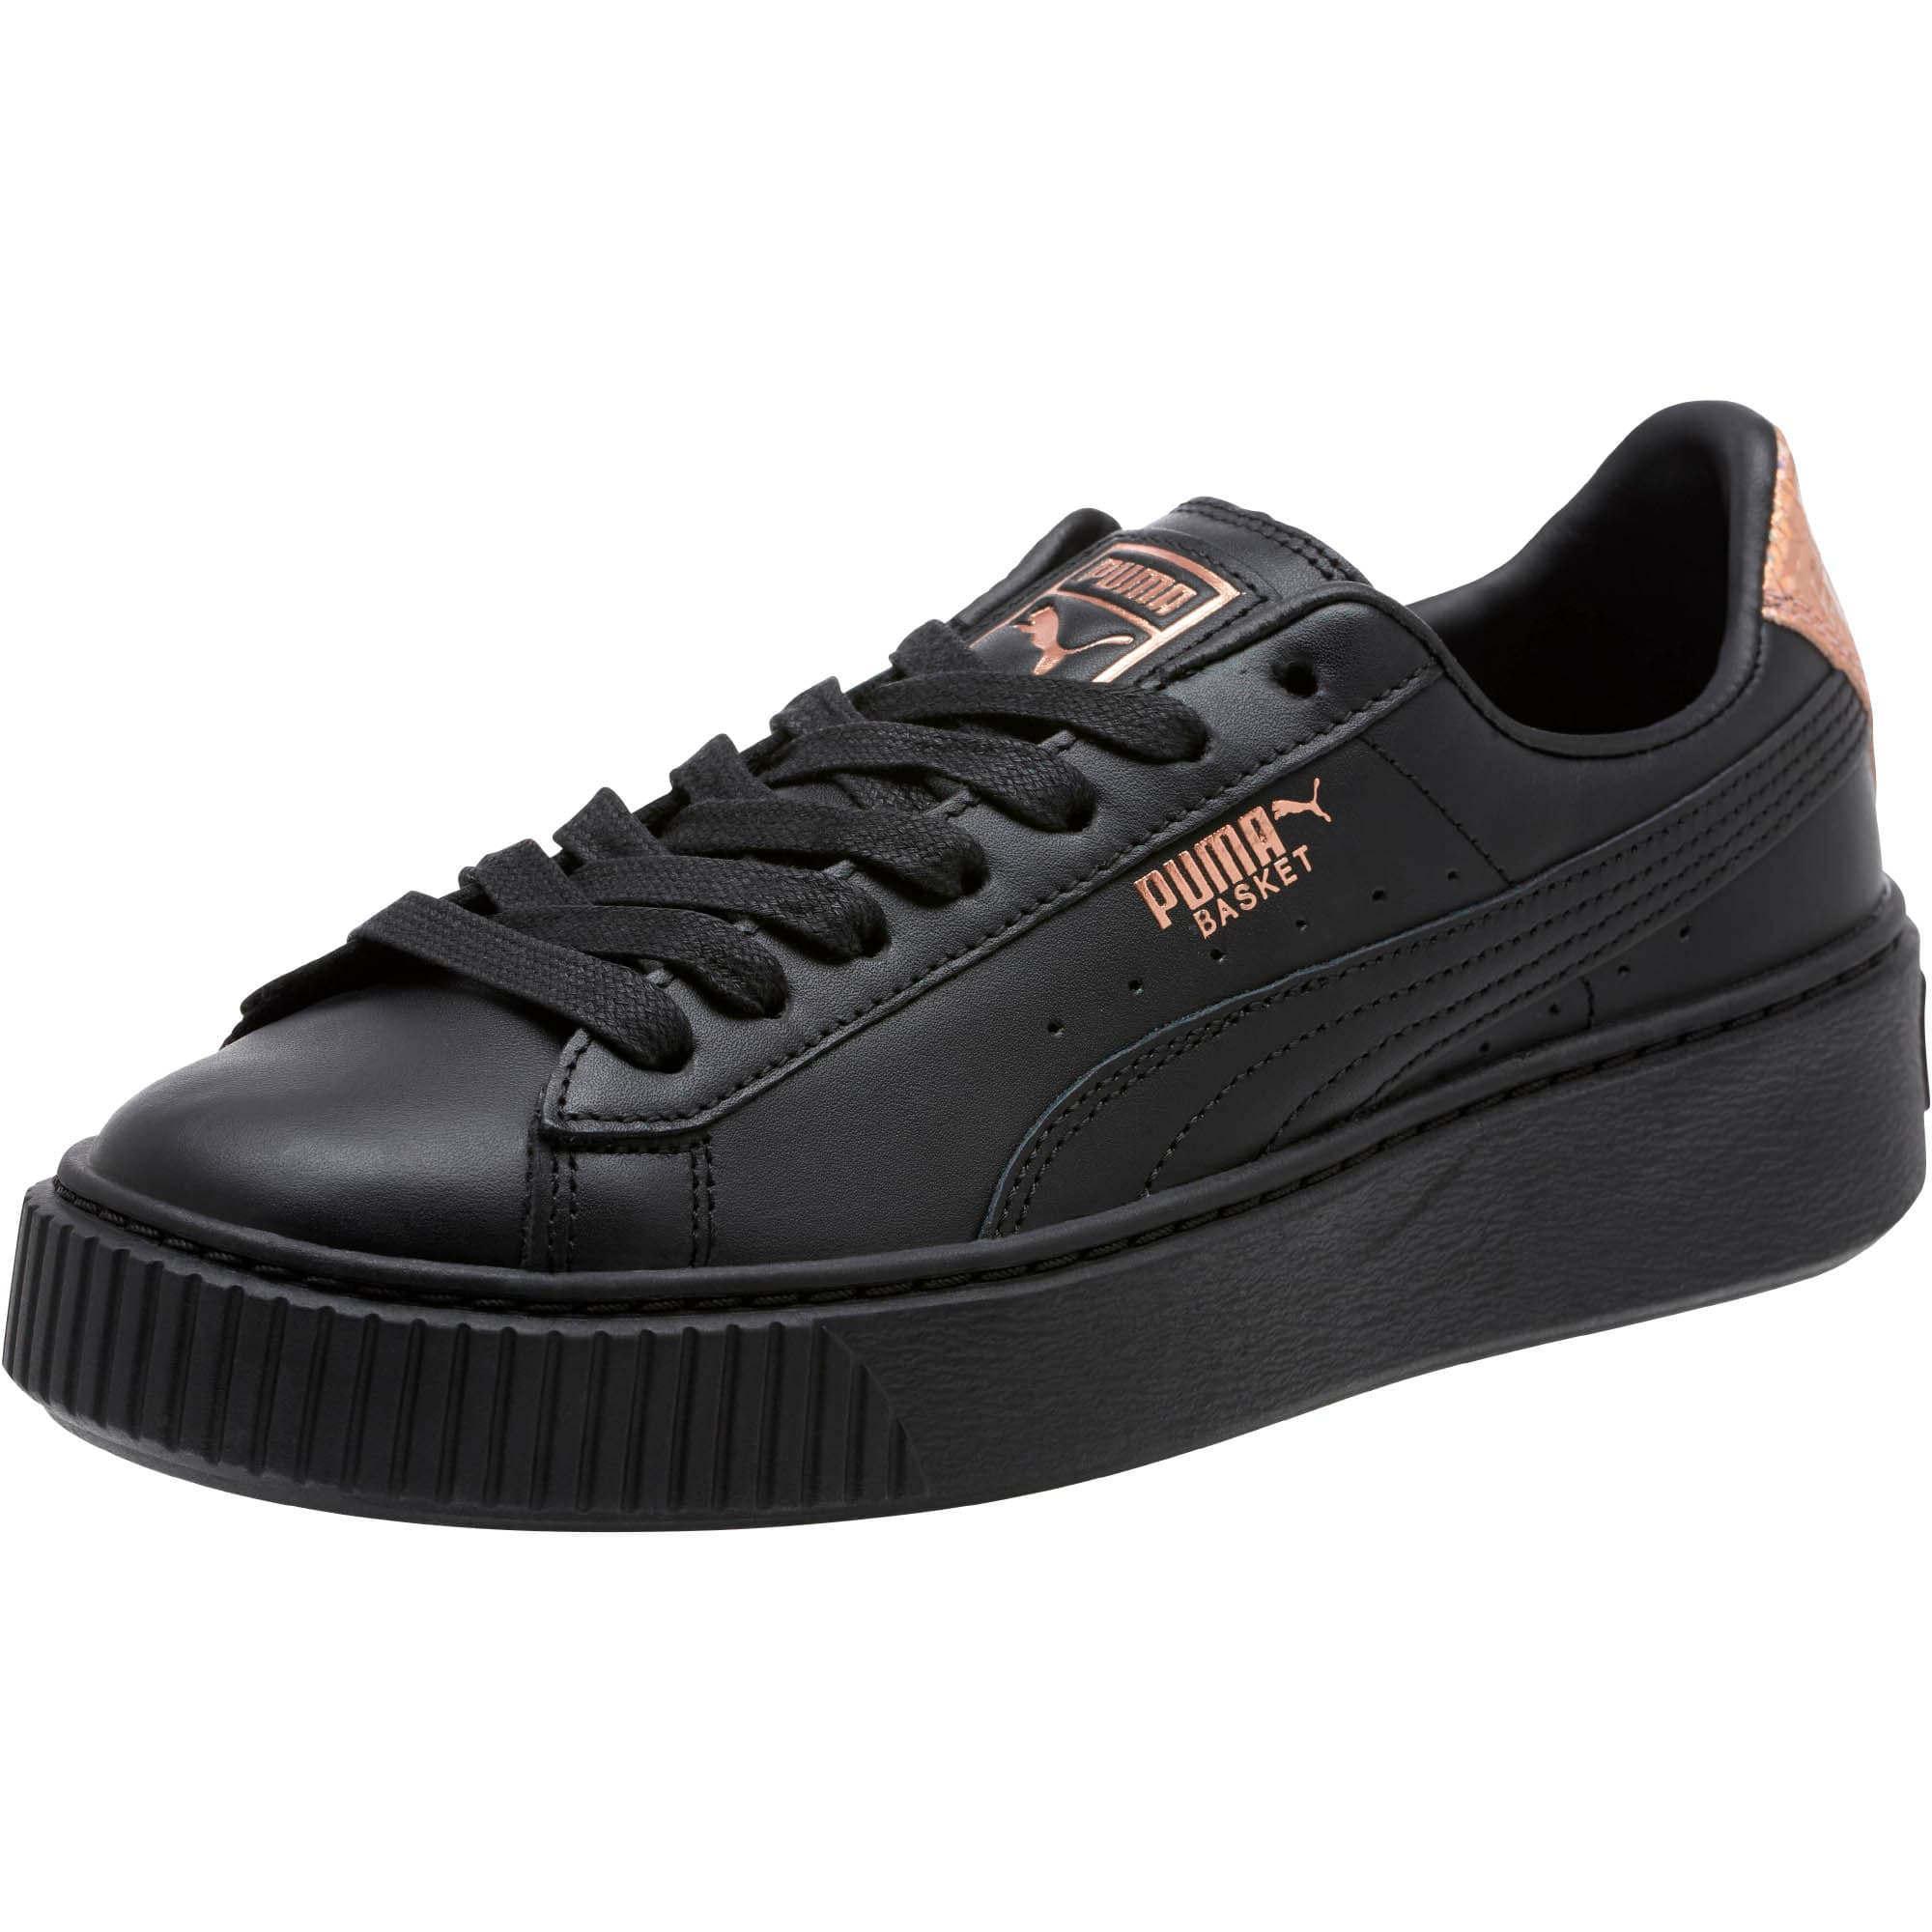 Basket Platform RG Women's Sneakers